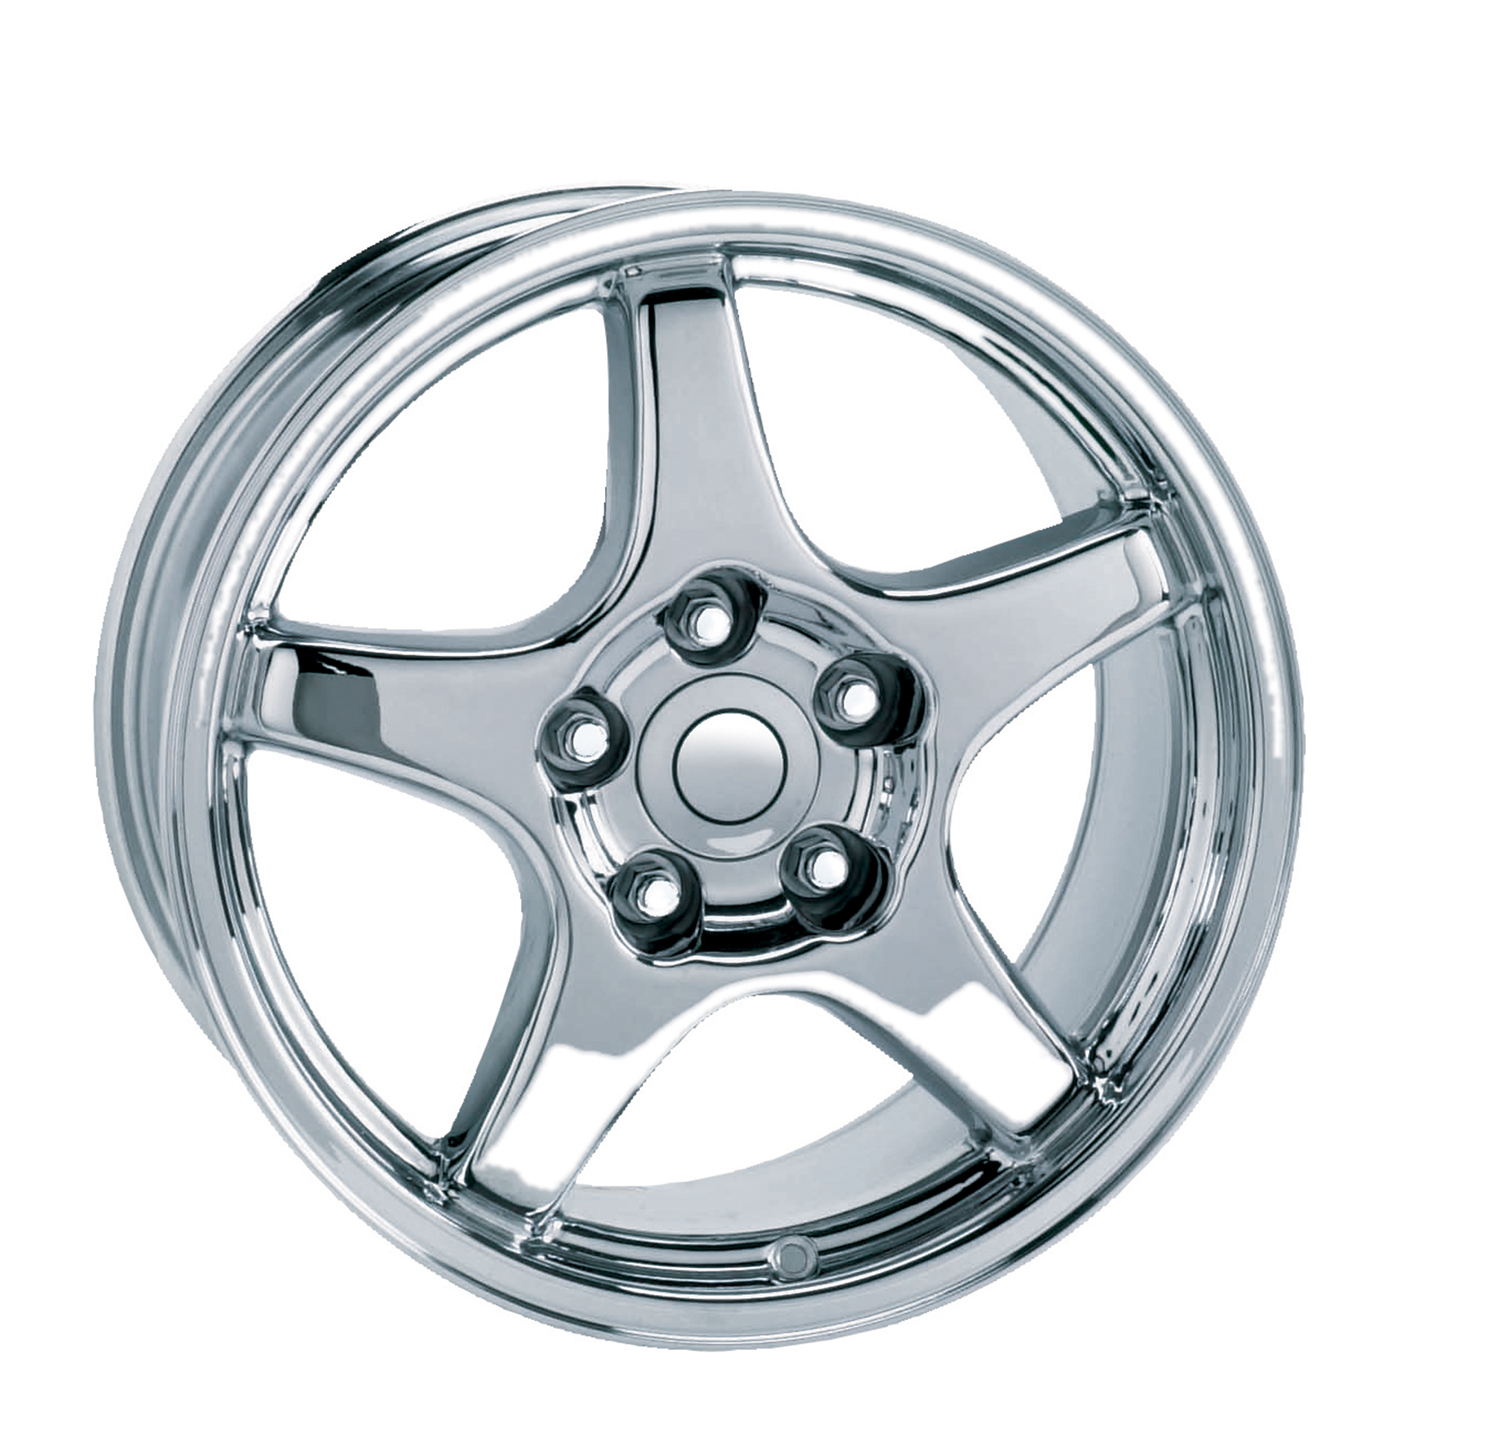 Chevrolet Corvette 1984-1996 17x9.5 5x4.75 +38 C4 Zr1 Style Wheel - Chrome With Cap